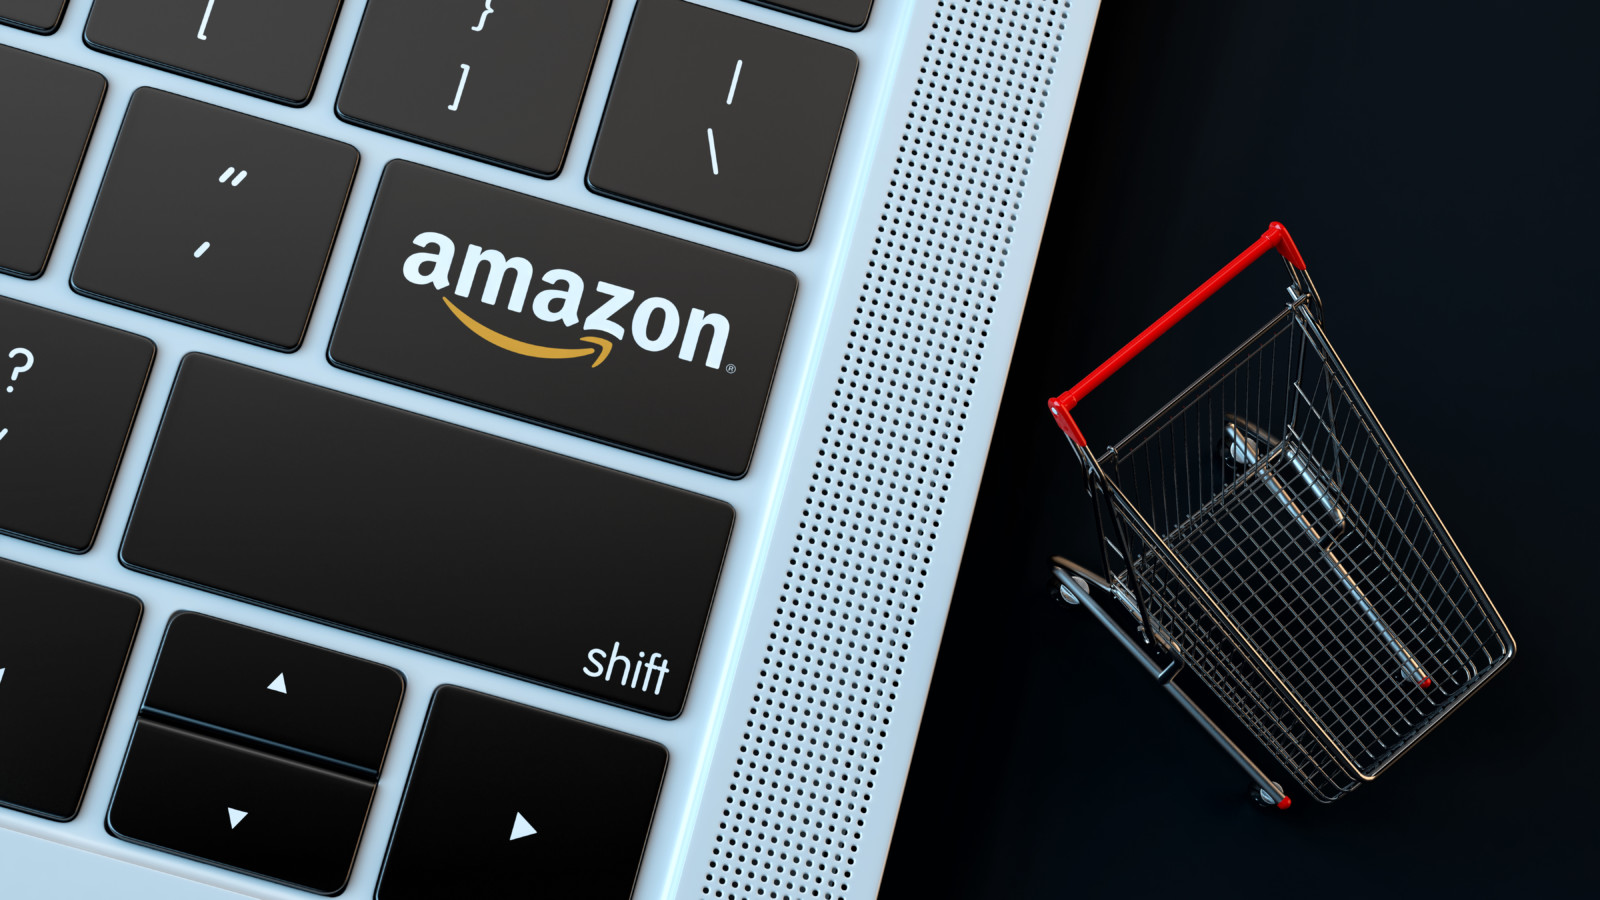 4 Ways to Prepare for the Sales Rush During Amazon Prime Day 2021